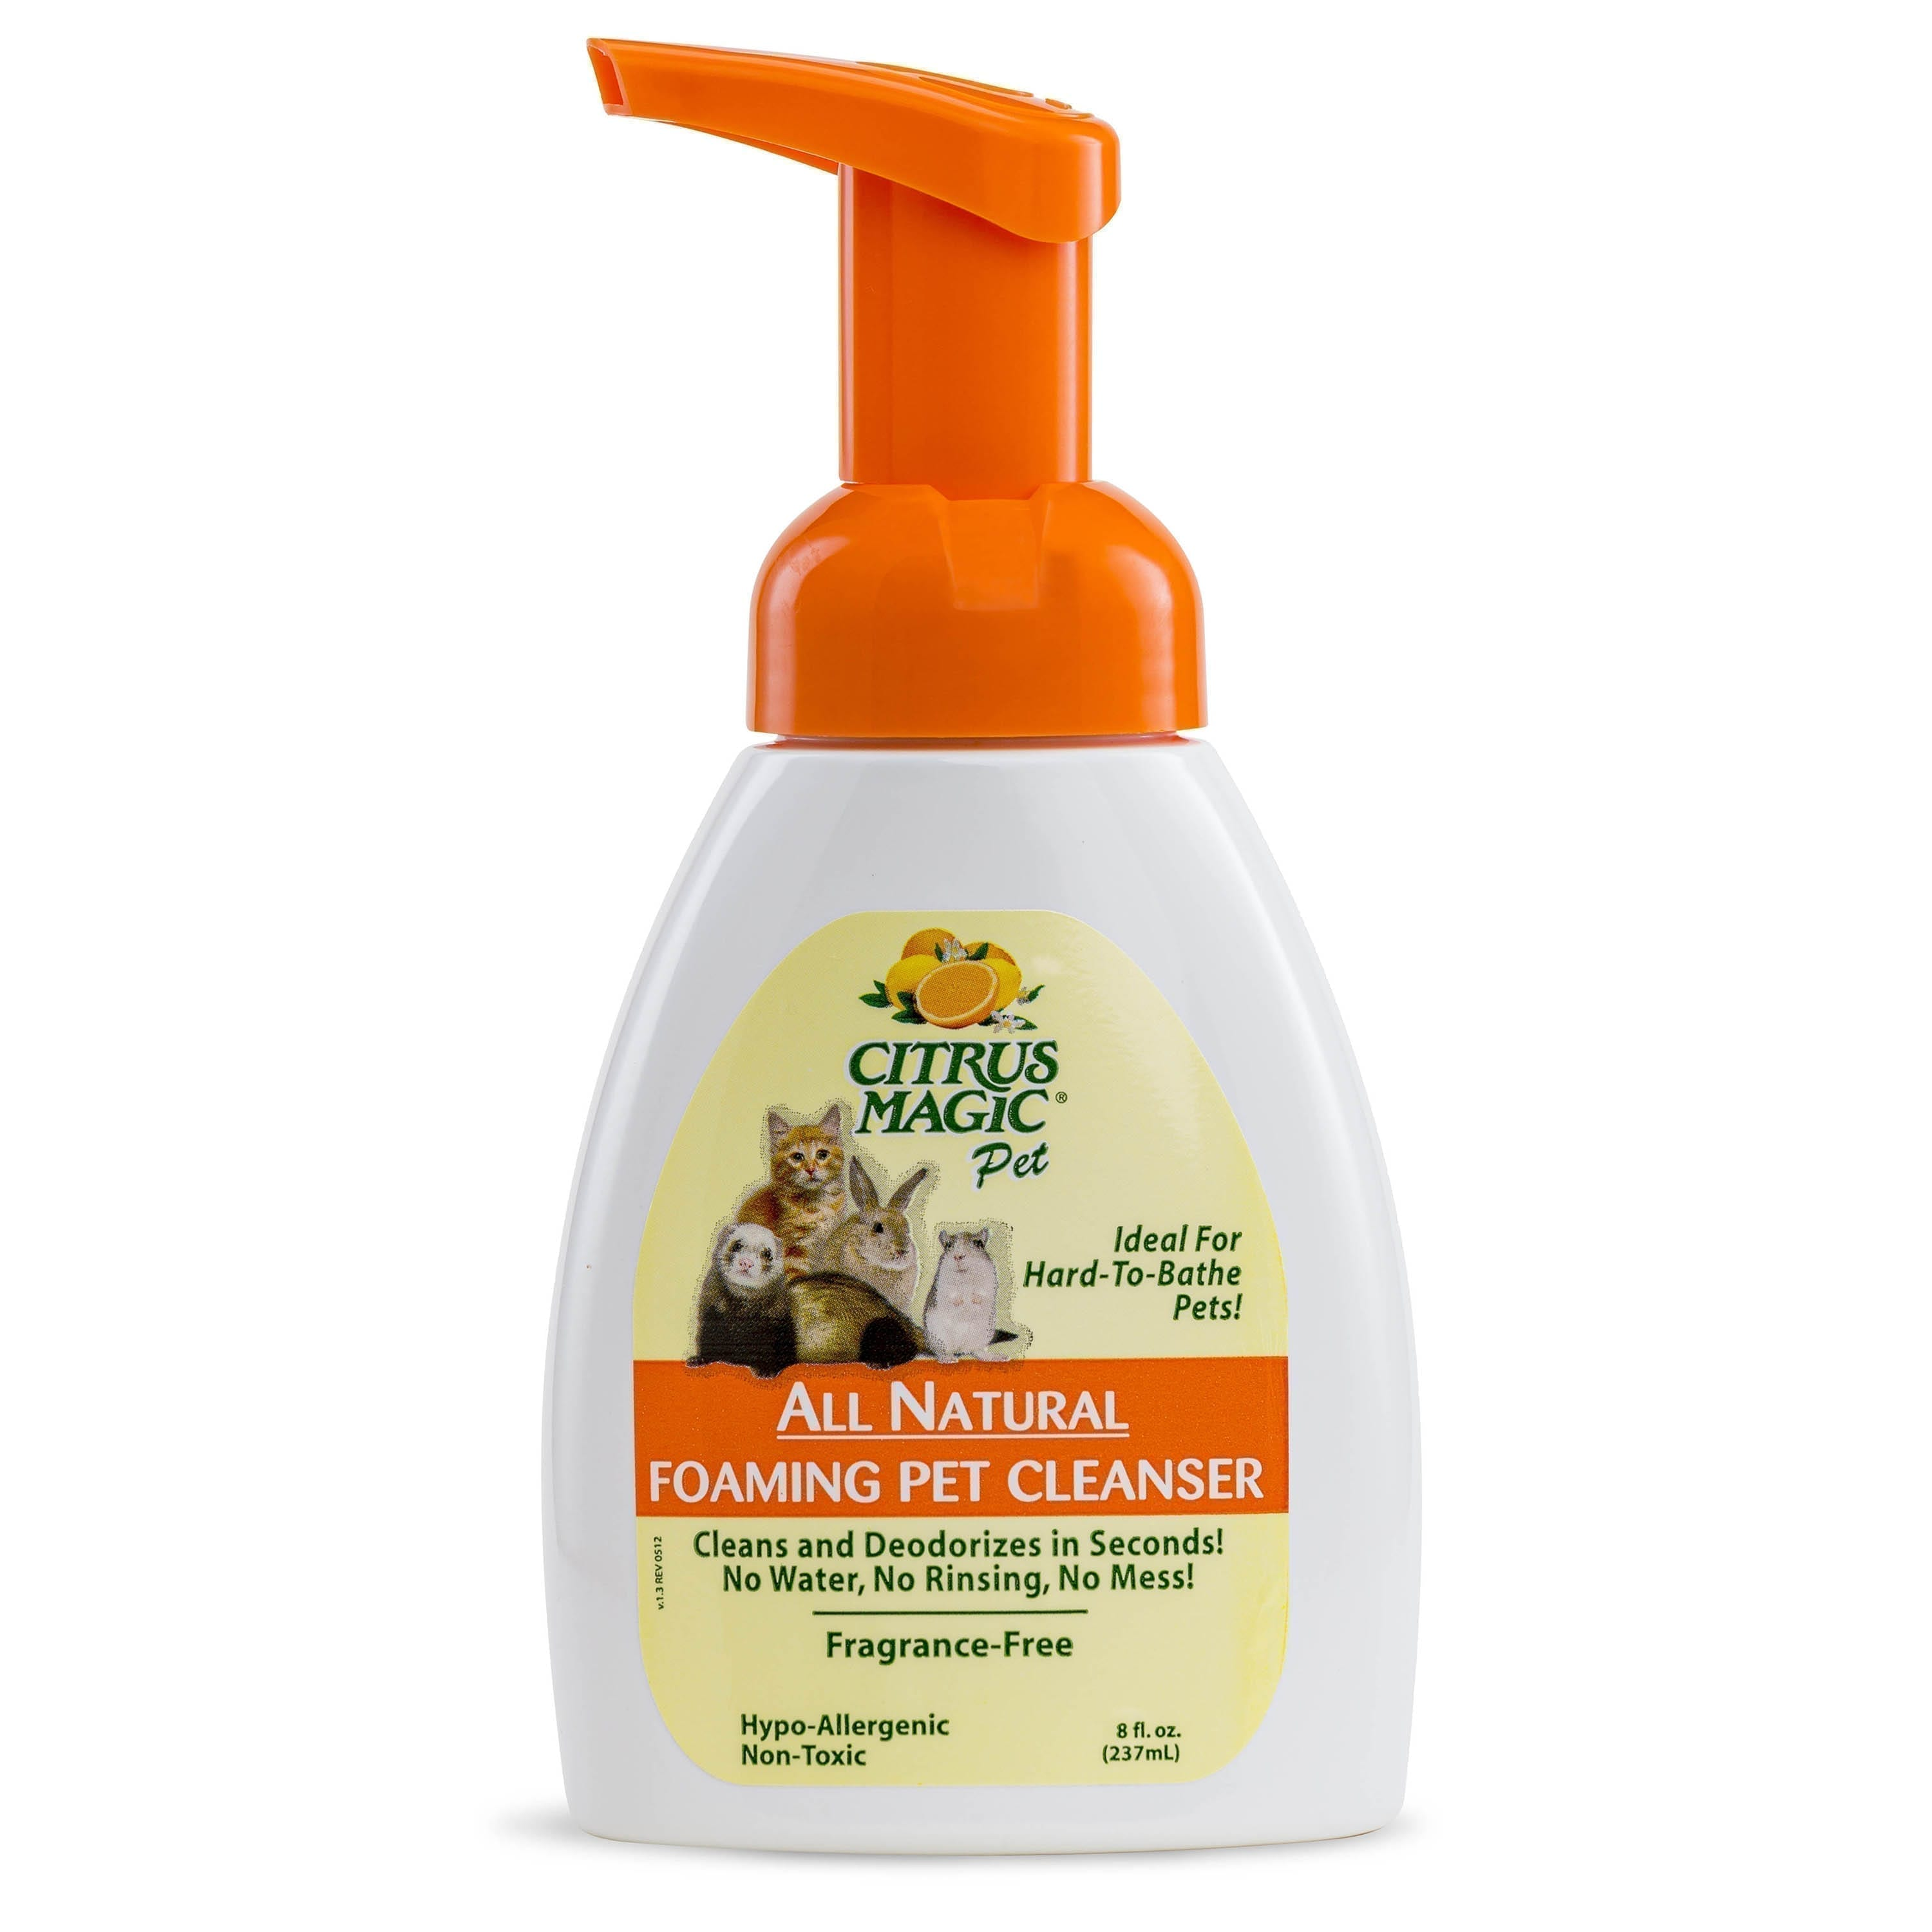 Citrus Magic Pet Foaming Pet Cleaner